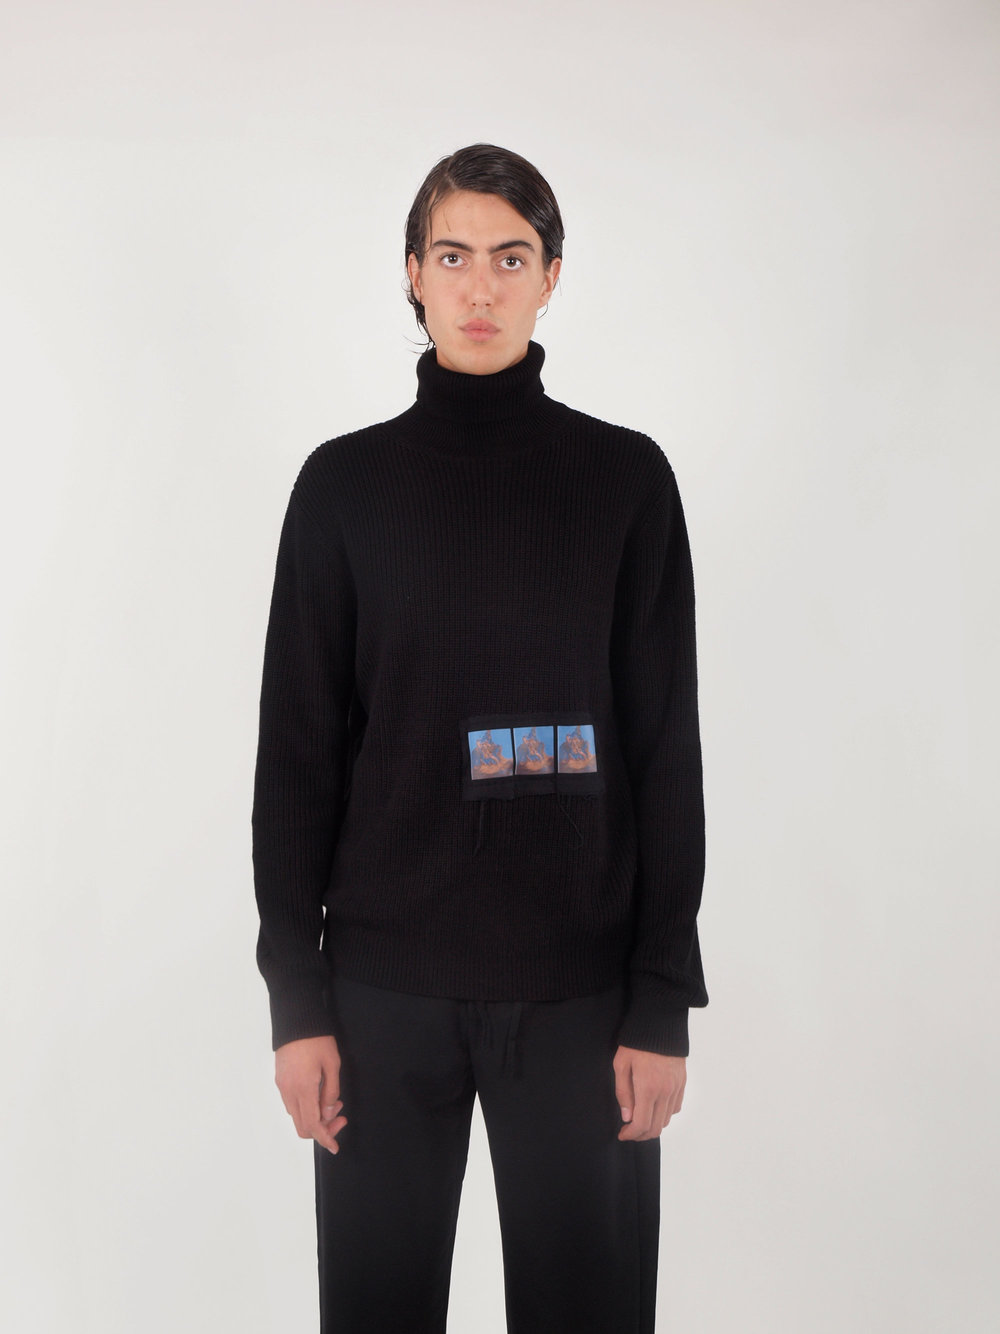 turtleneck.jpg